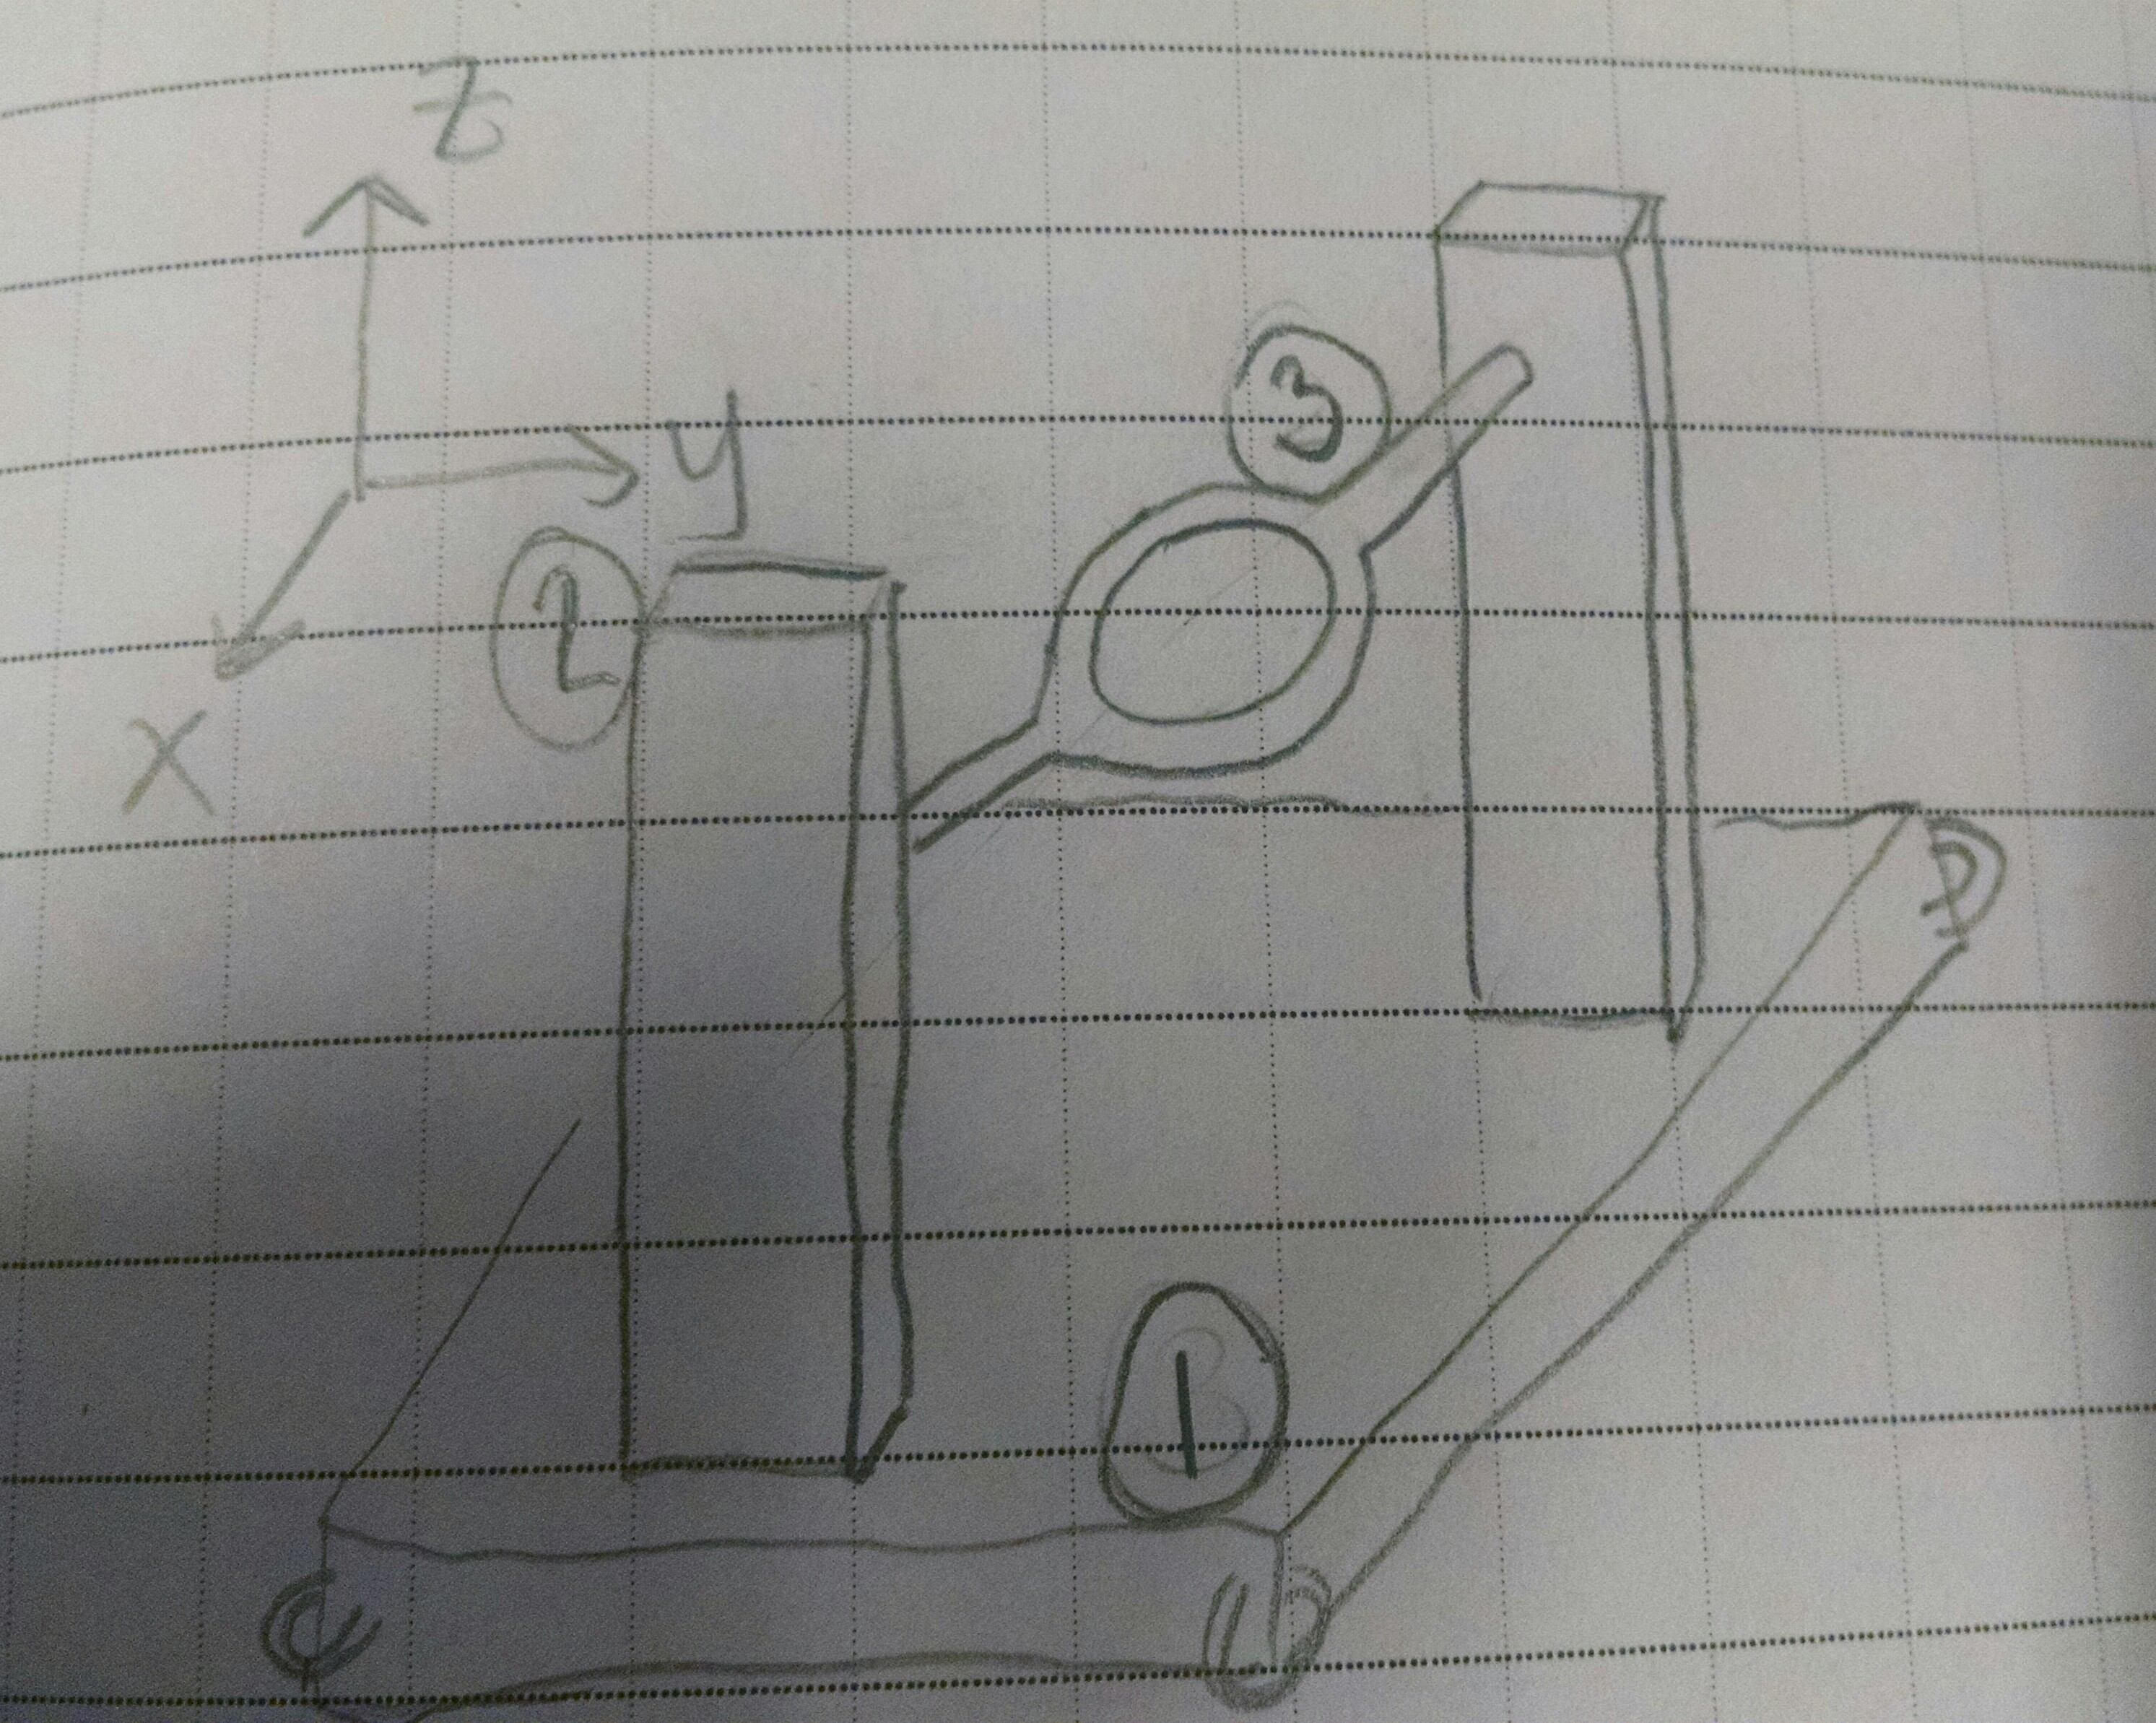 Edge Circuit Diagram For Dc Motor Control By A Collins Base Station Hand Sketch